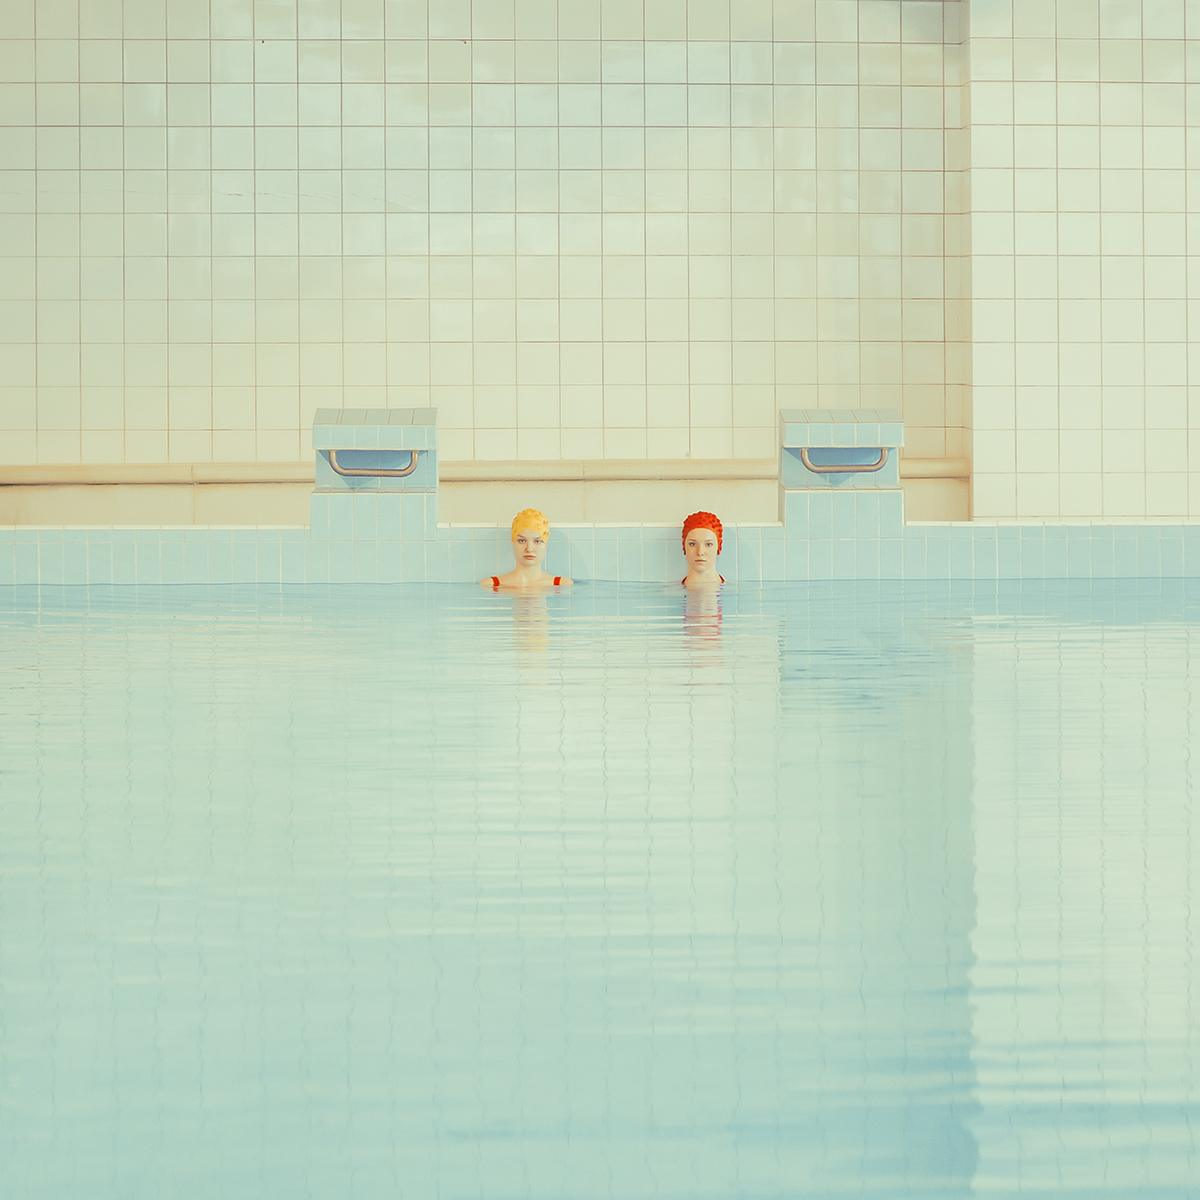 Swimmers, Archival Pigment Print